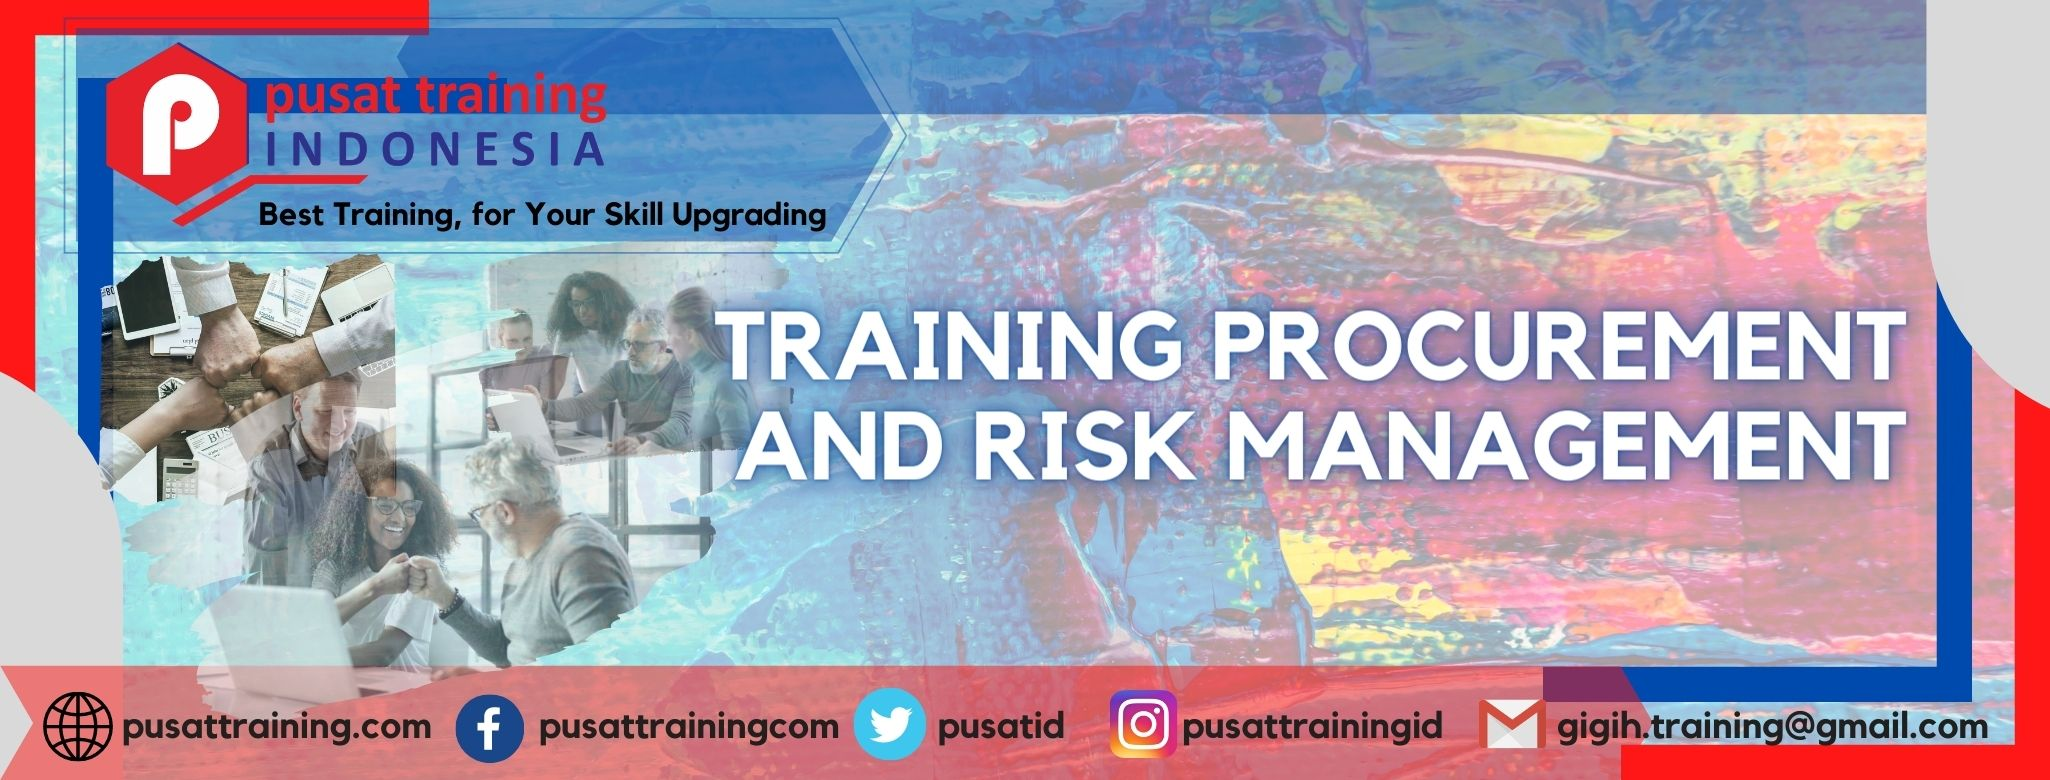 TRAINING PROCUREMENT AND RISK MANAGEMENT